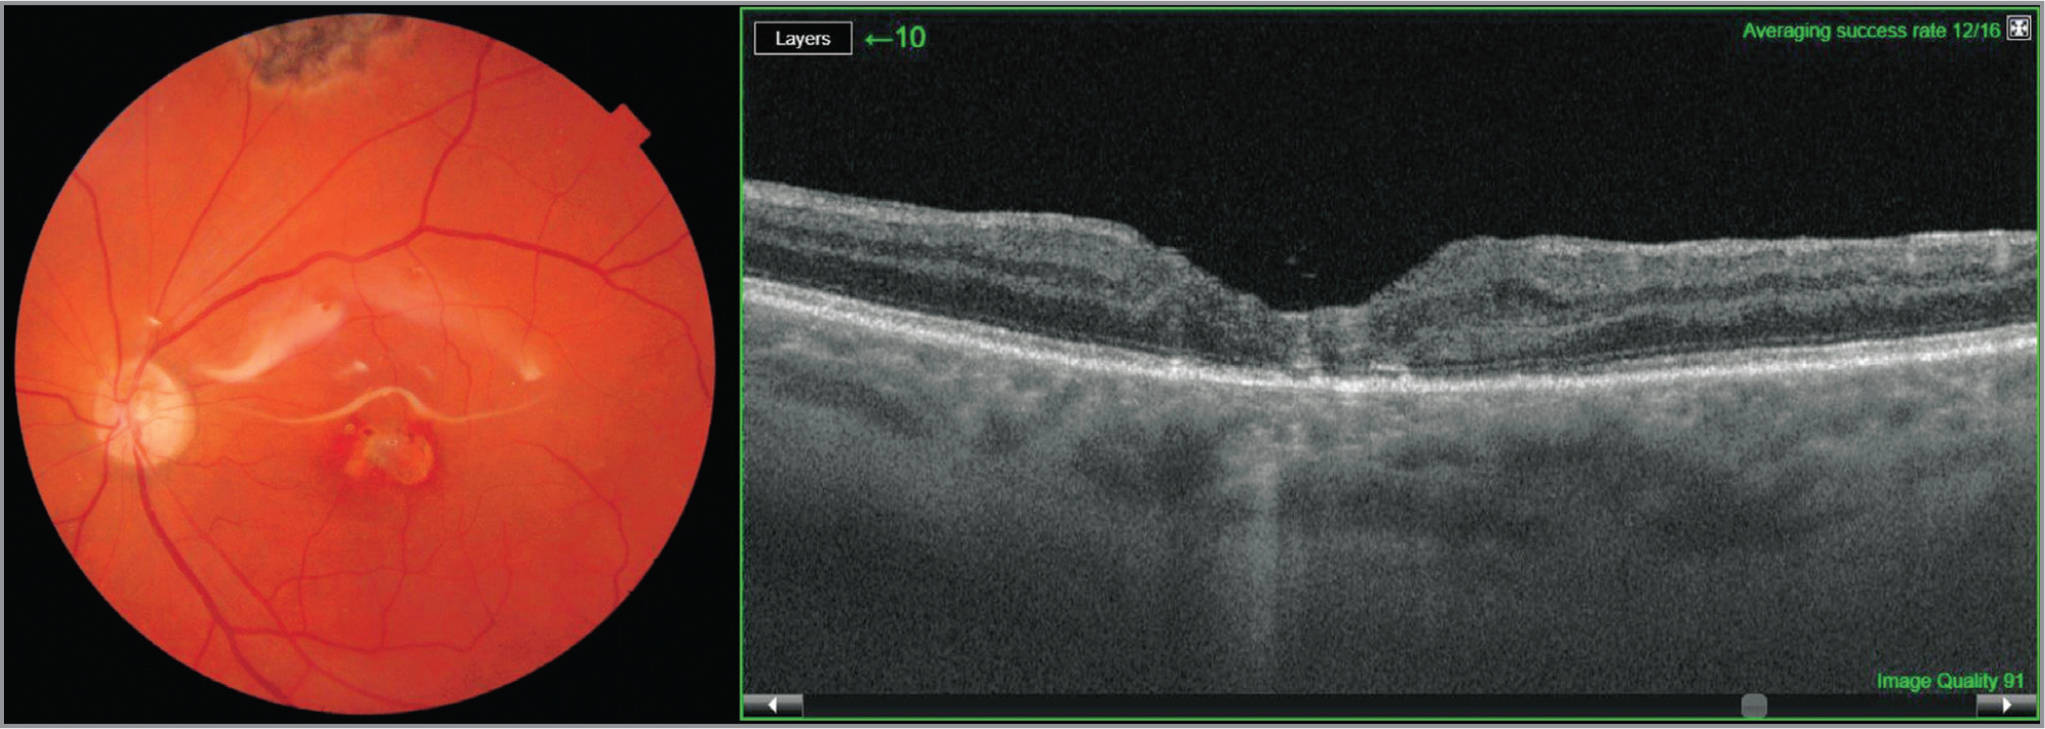 (Left) Native fundus photo with closed macular hole and harvested site; at 3-month follow-up with best-corrected visual acuity (BCVA) of 20/60. Silicone oil tamponade. (Right) Optical coherence tomography scan at 3-month follow-up with BCVA of 20/60. Silicone oil tamponade.